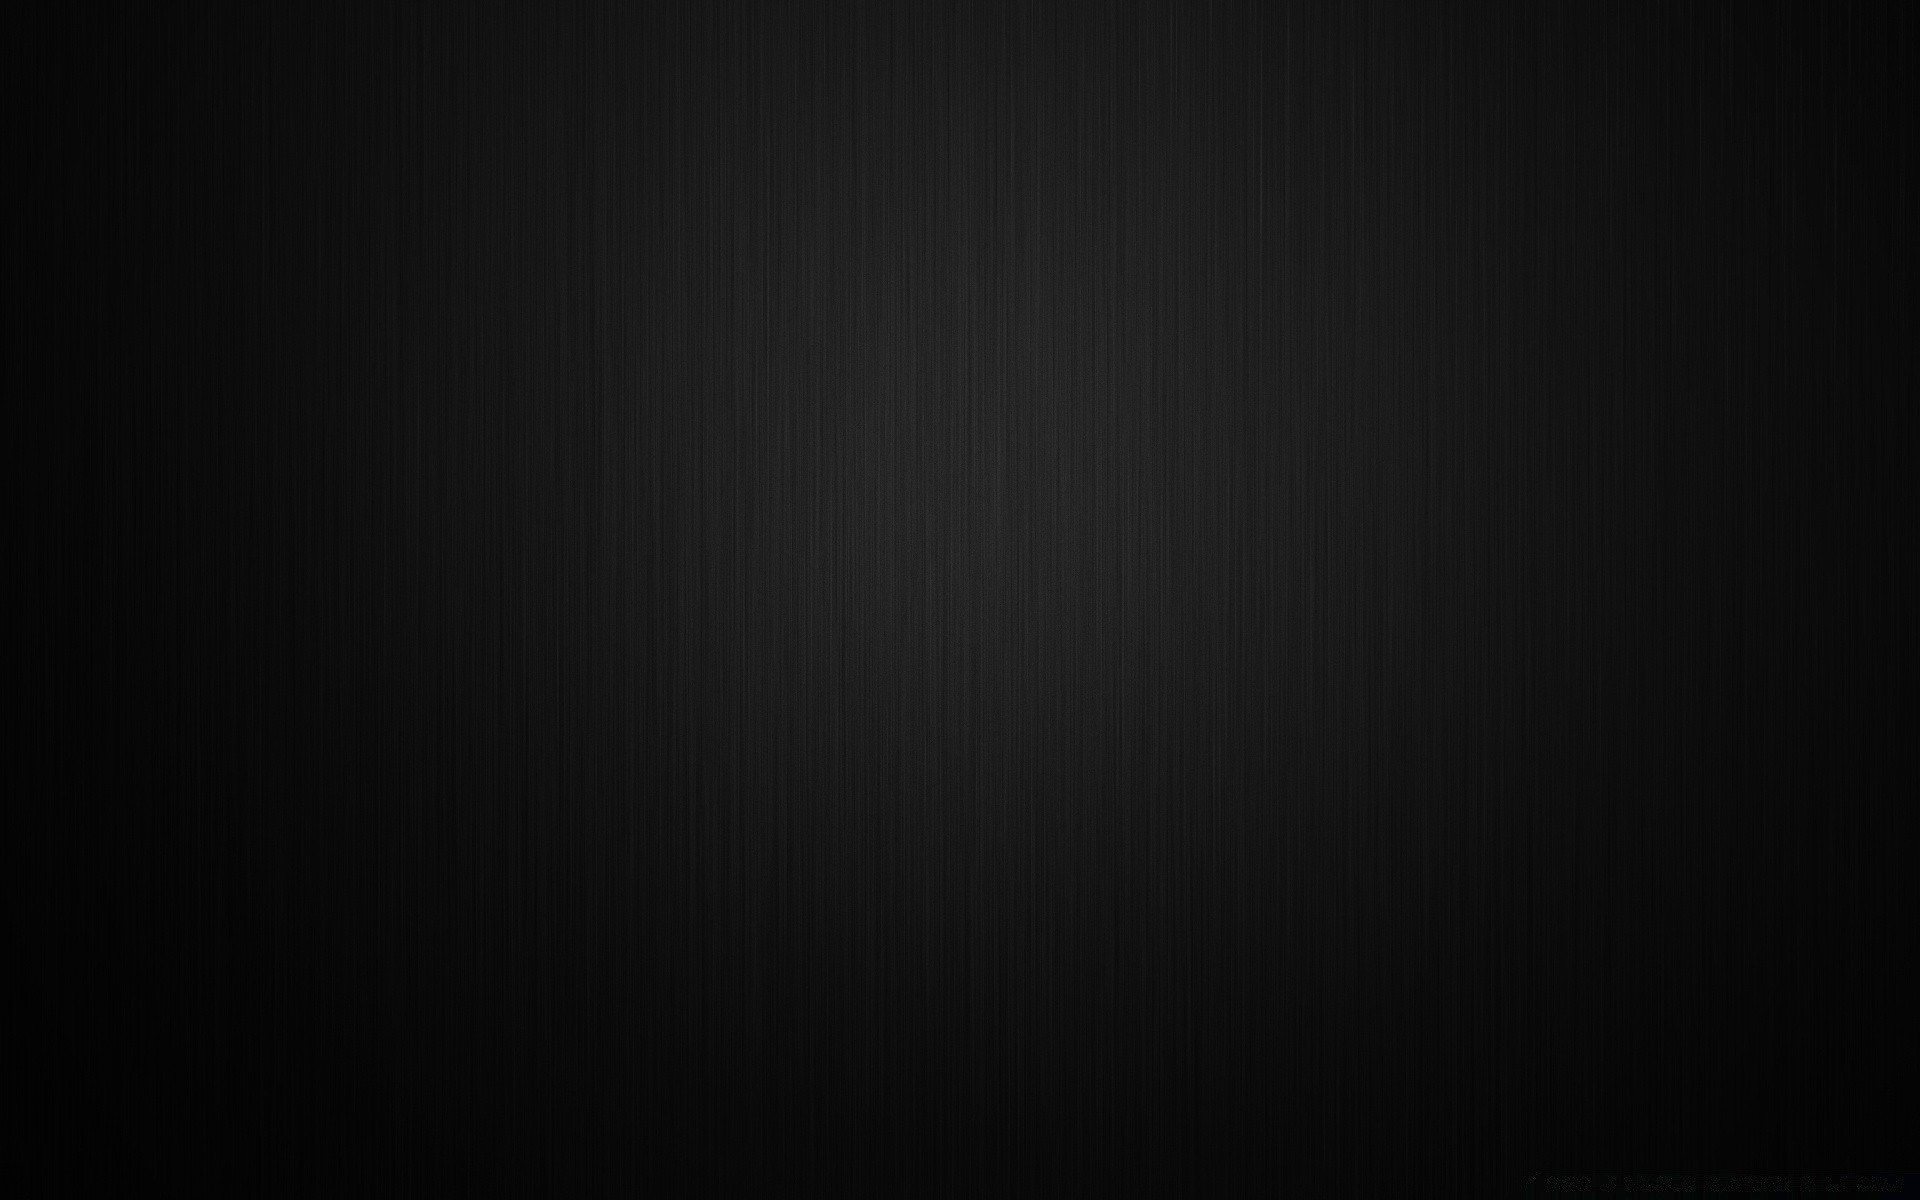 black abstract background pattern wallpaper texture art desktop dark hd wallpaper android wallpapers for free